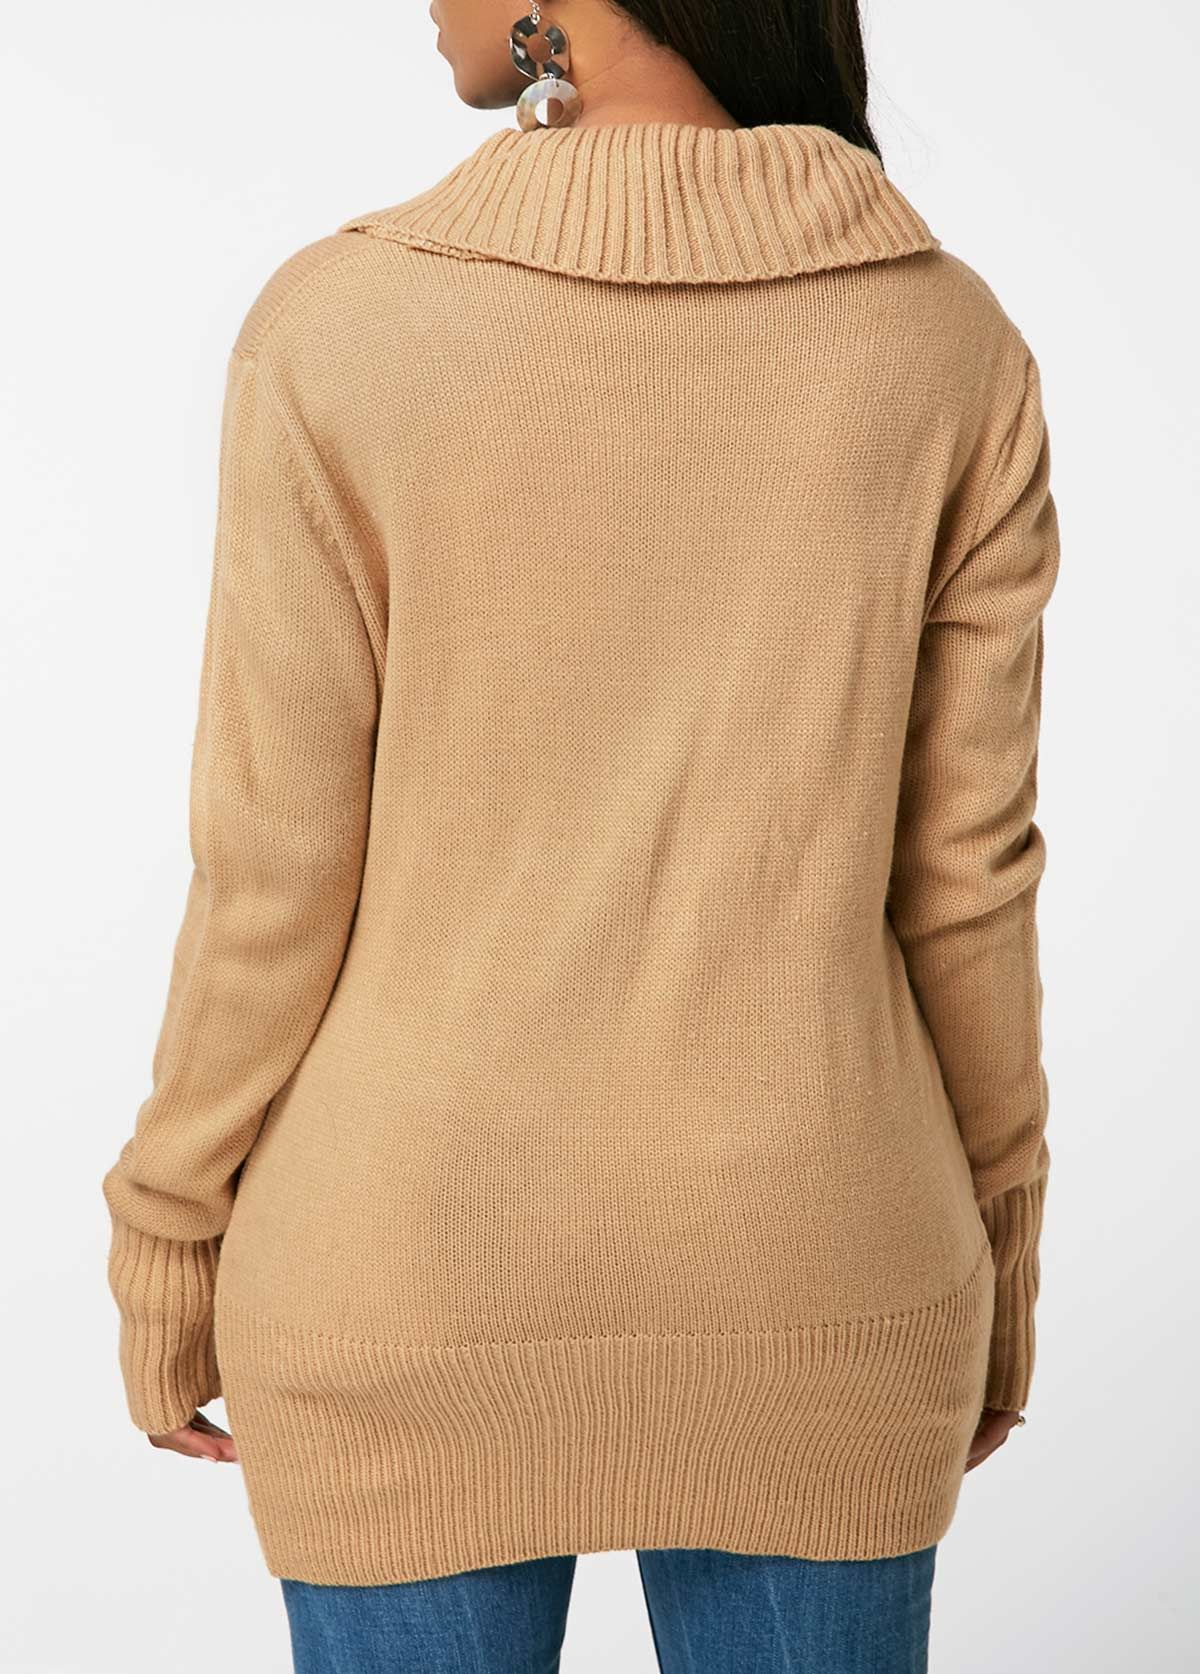 Lace Up Detail Khaki V Neck Sweater  0887c1bee